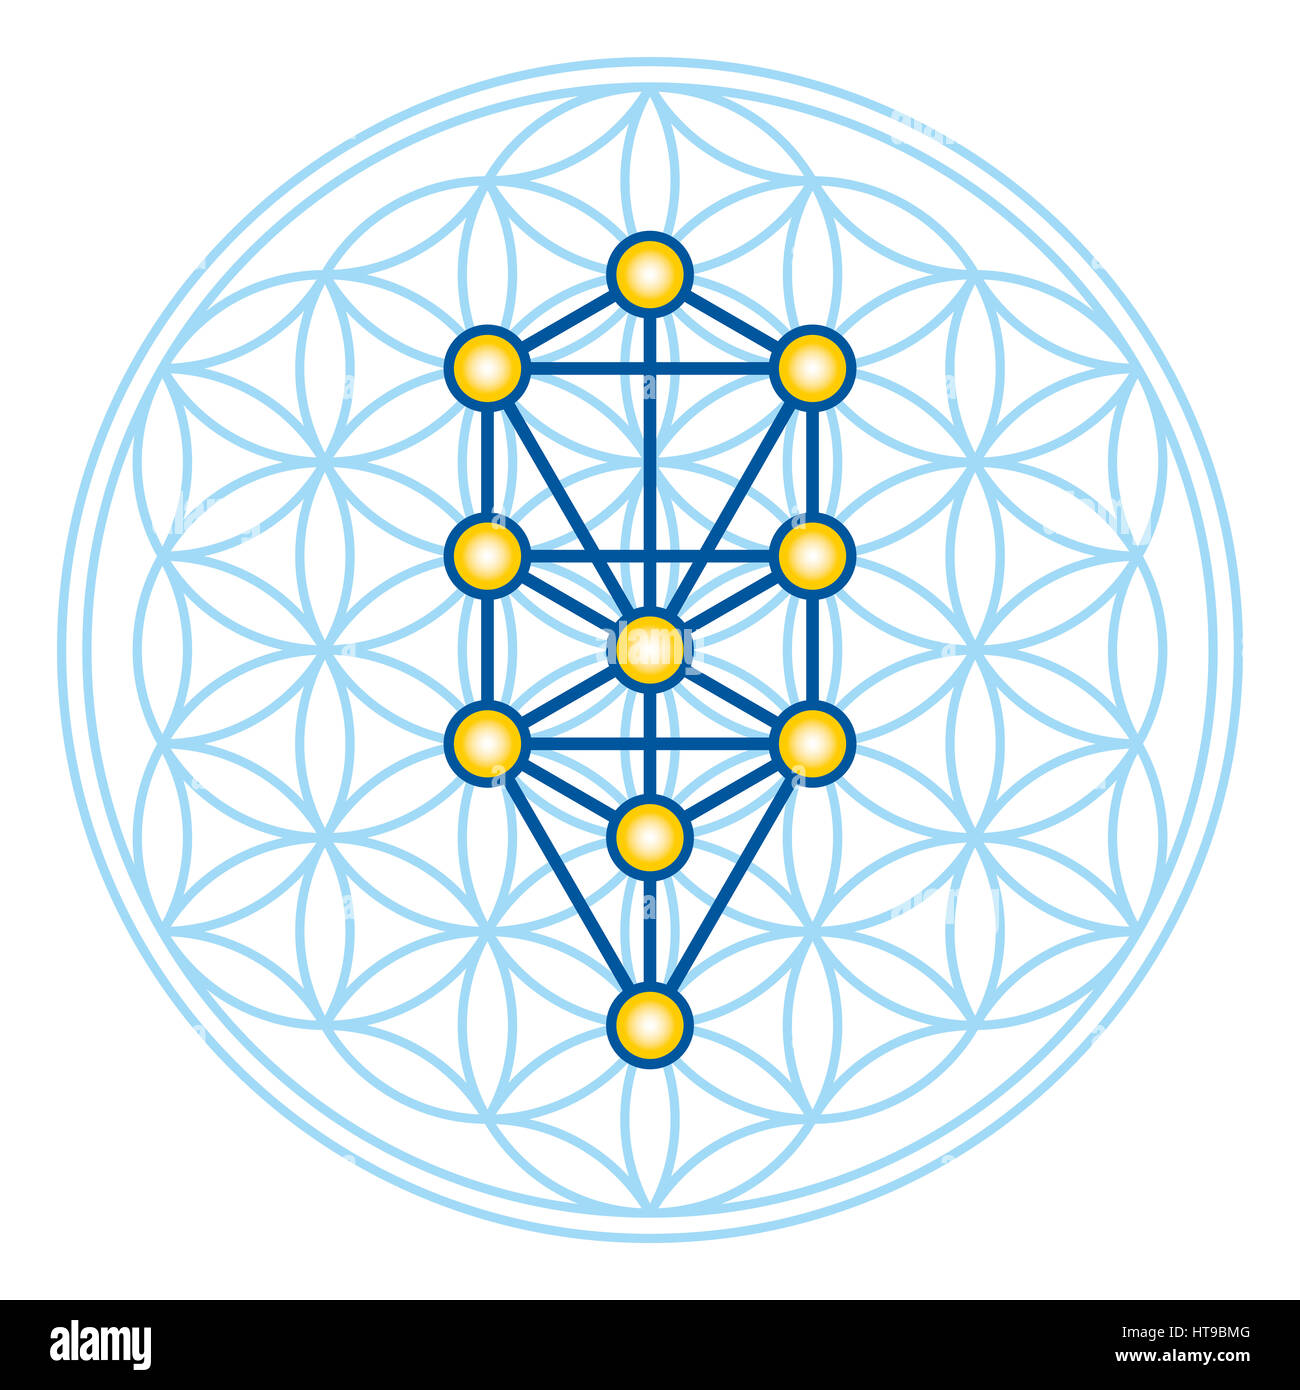 Flower of Life in Tree of Life. Sephirots of Kabbalah in ancient symmetrical symbol, composed of multiple overlapping - Stock Image